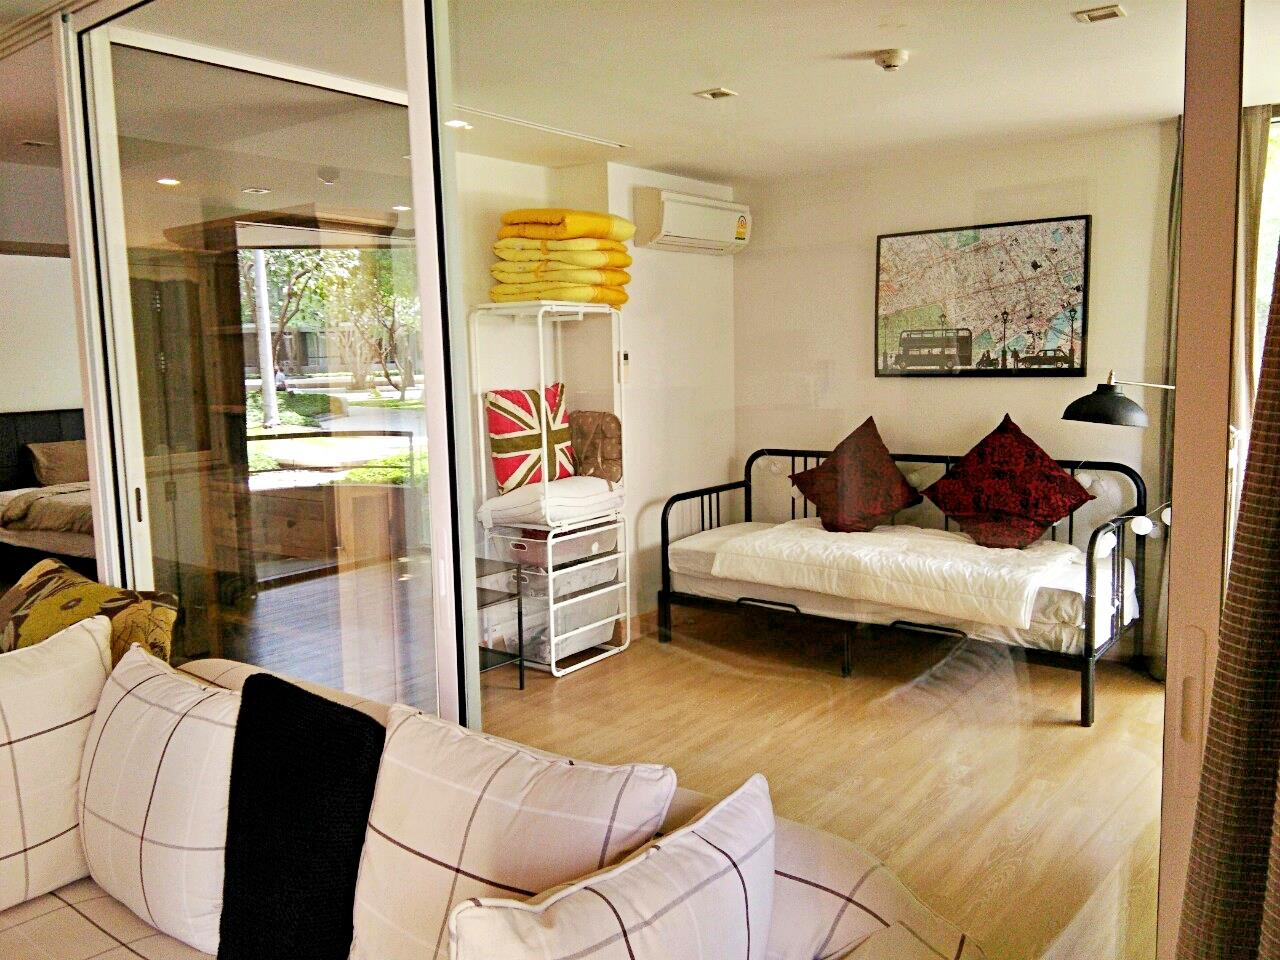 Agent - Sirikarn Katesuwan Agency's Luxury Beachfront Apartment 79 SQM. in Hua Hin for SALE only 6M 7